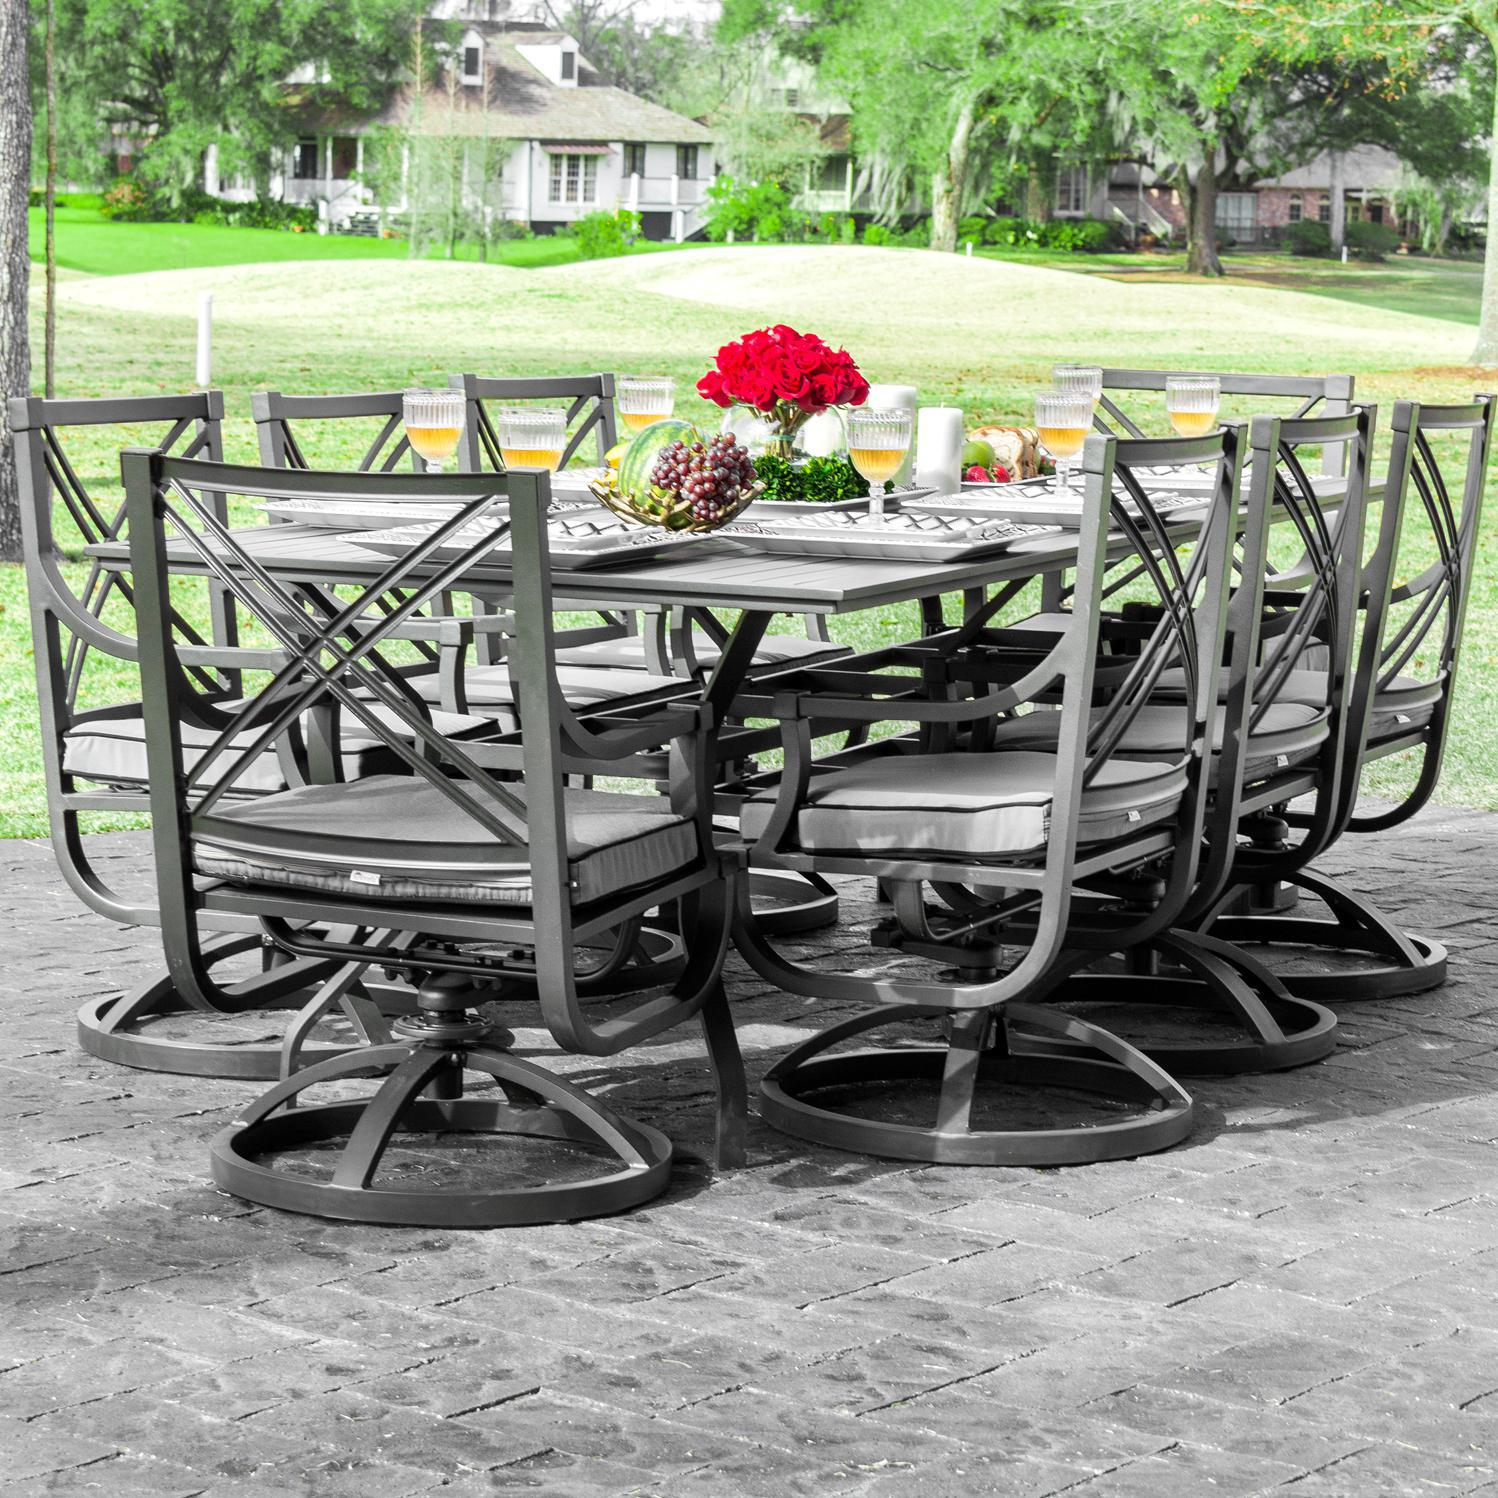 patio dining sets for 8 people photo - 4